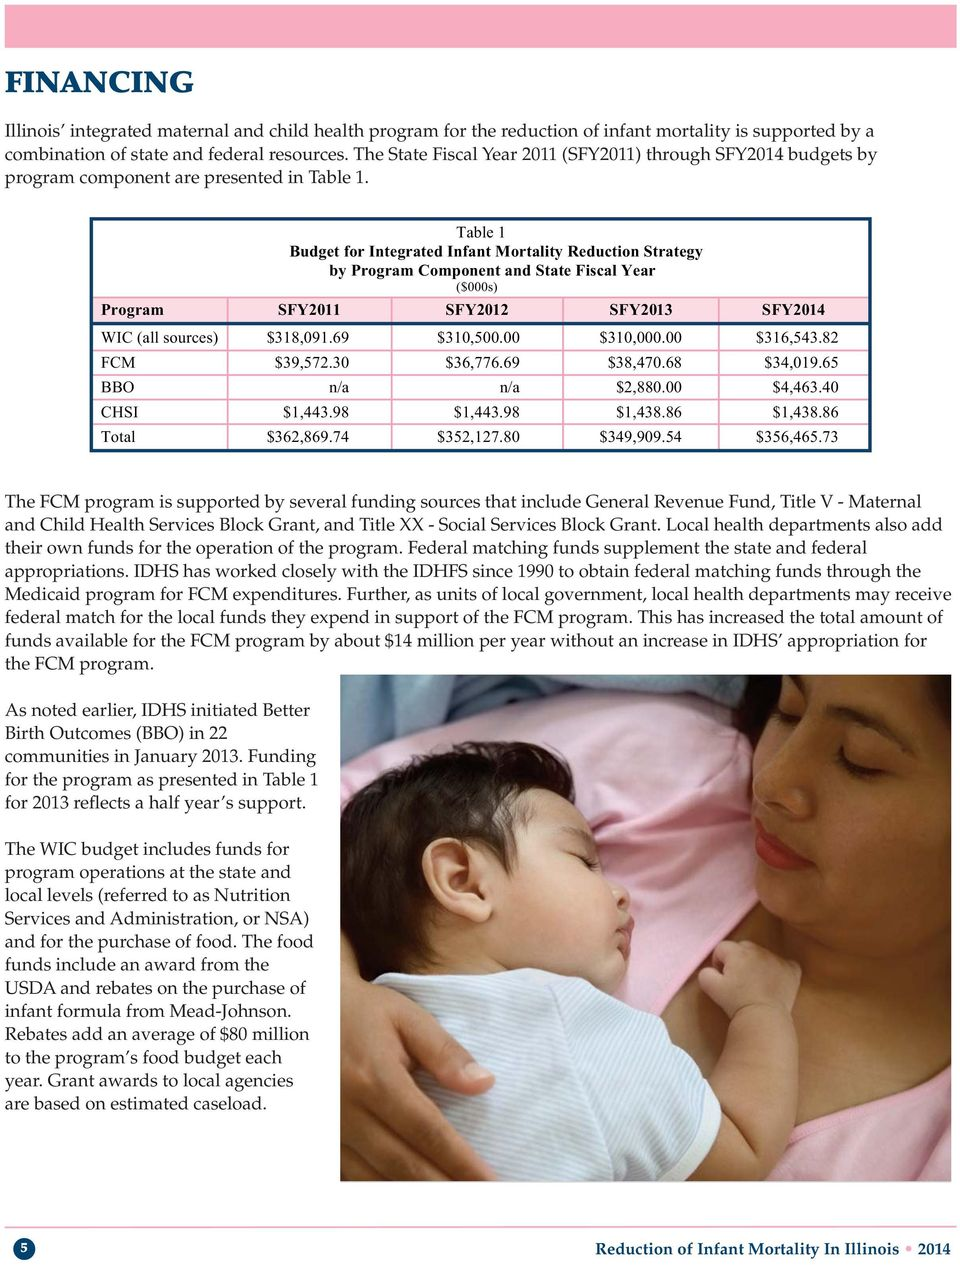 Table 1 Budget for Integrated Infant Mortality Reduction Strategy by Program Component and State Fiscal Year ($000s) Program SFY2011 SFY2012 SFY2013 SFY2014 WIC (all sources) $318,091.69 $310,500.